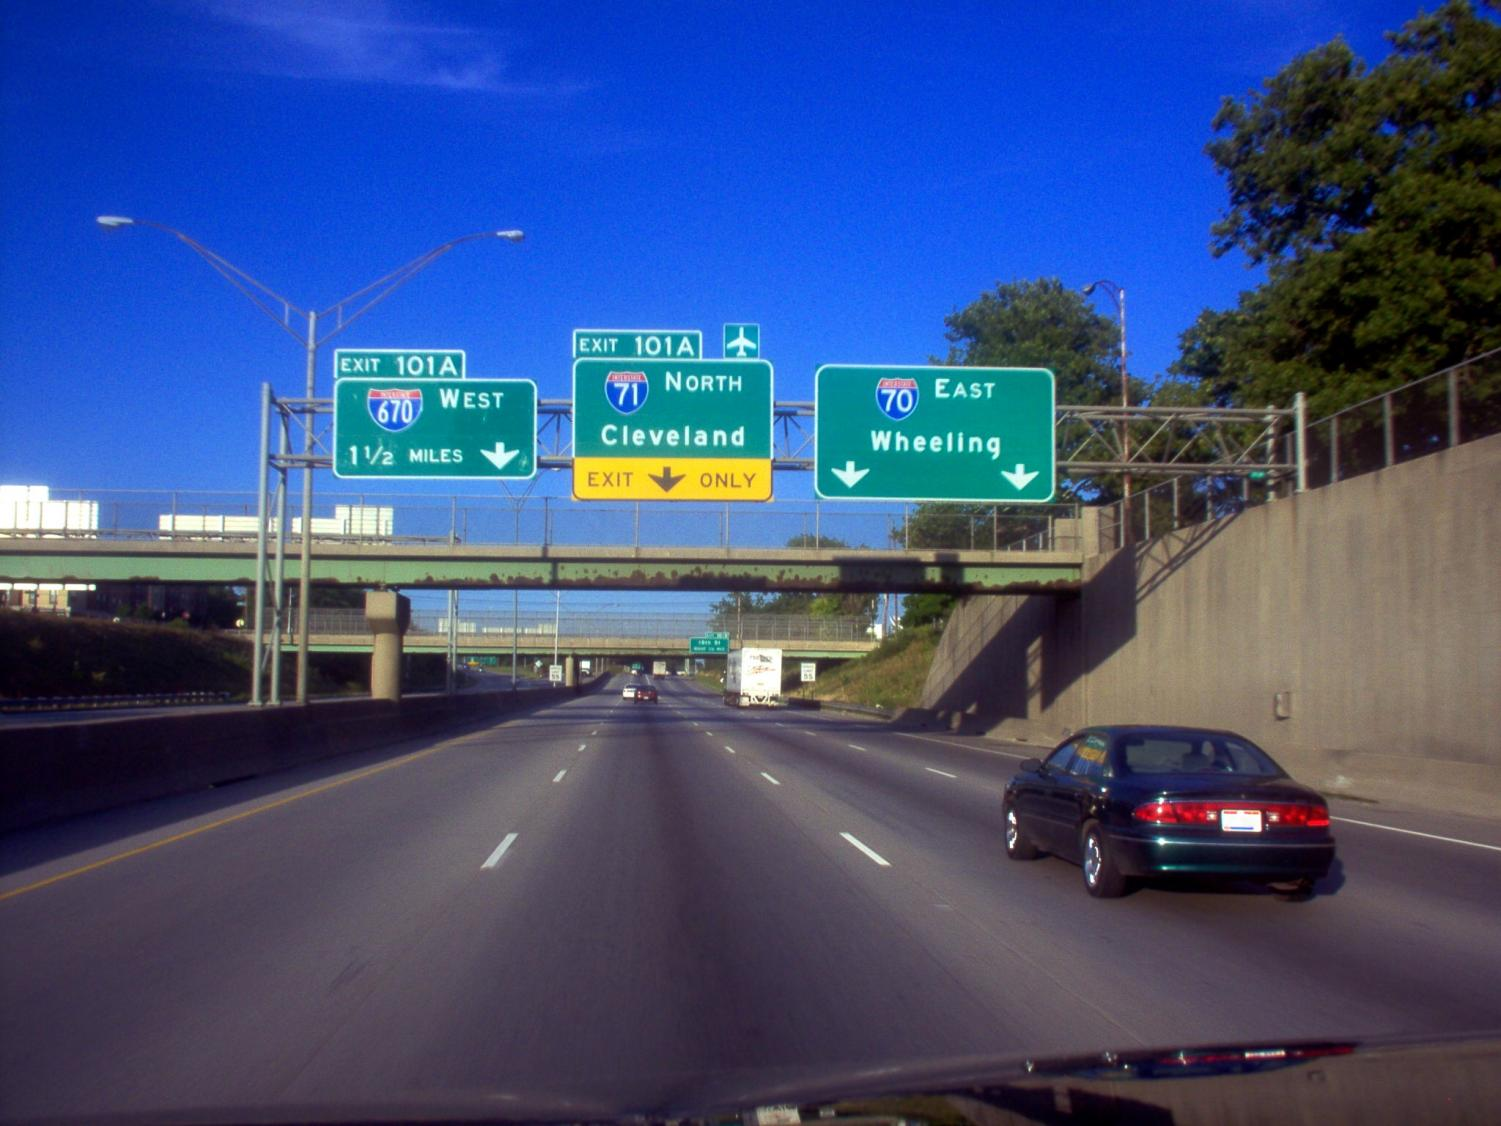 Central Ohio freeway signs. New smartlane technology is being utilized on 670.